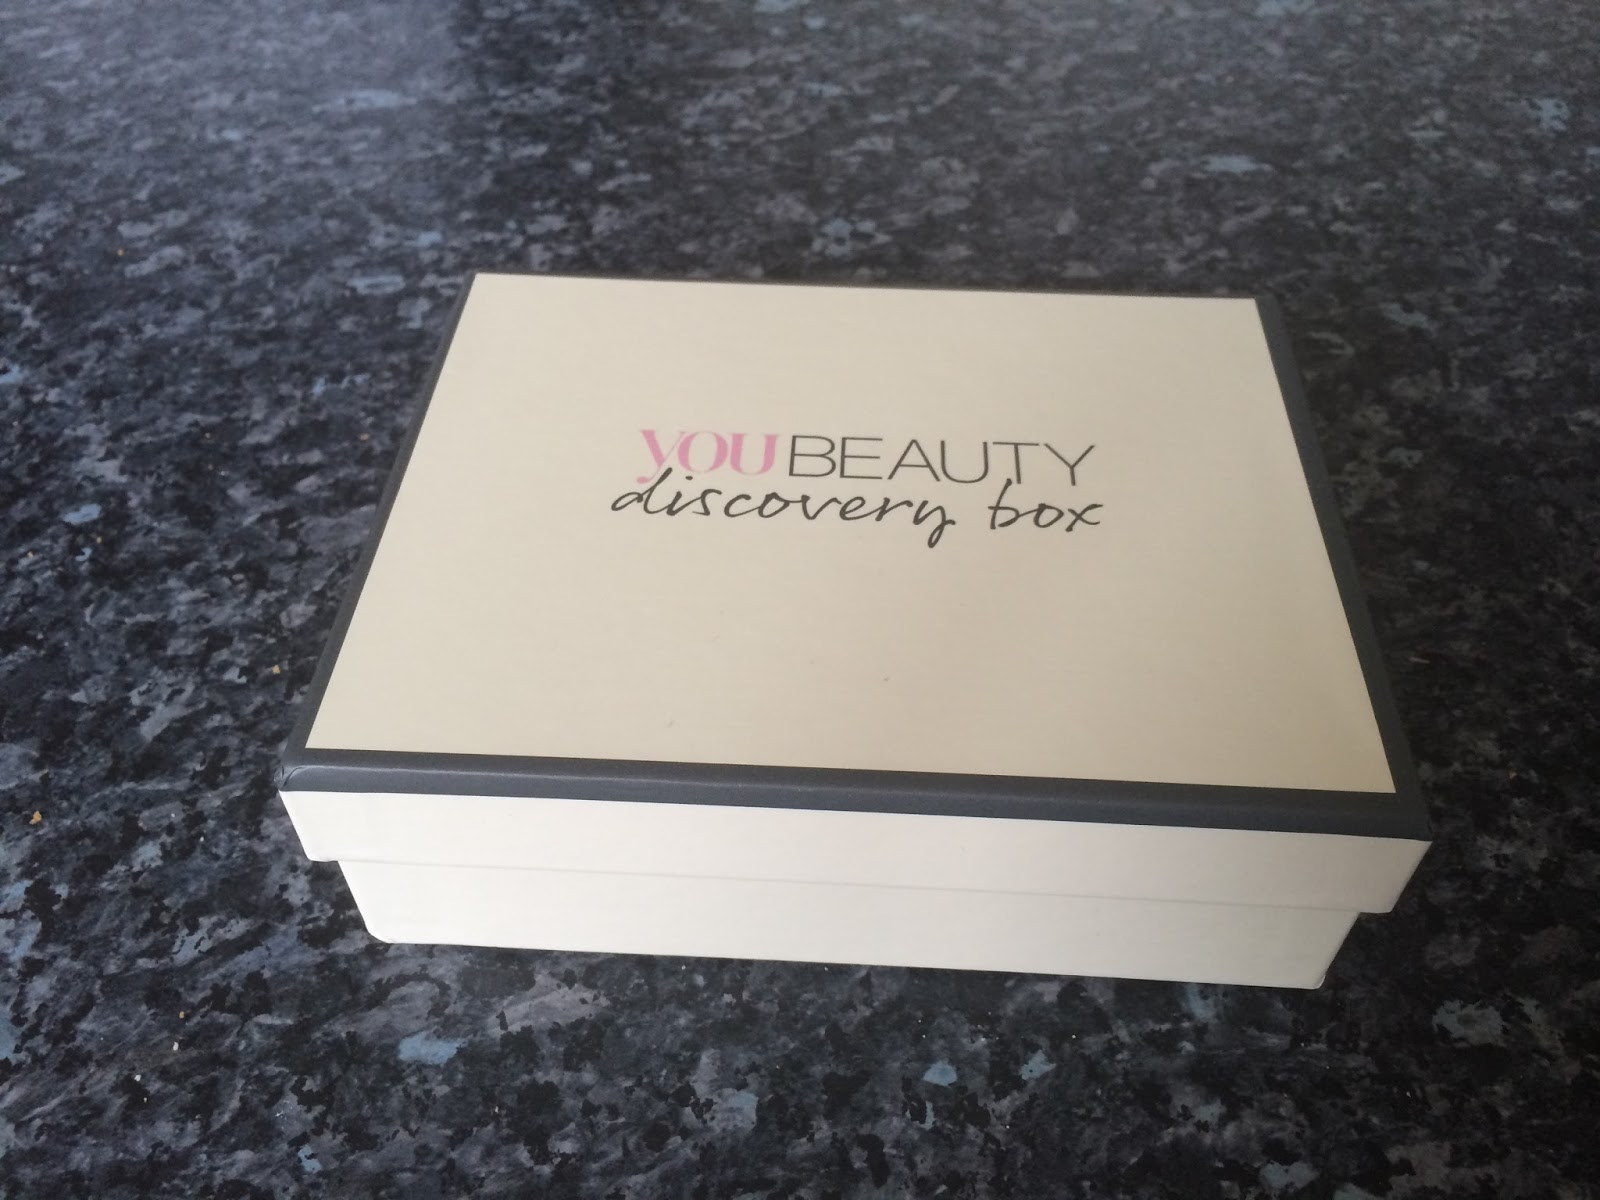 You Beauty Discovery Box - March